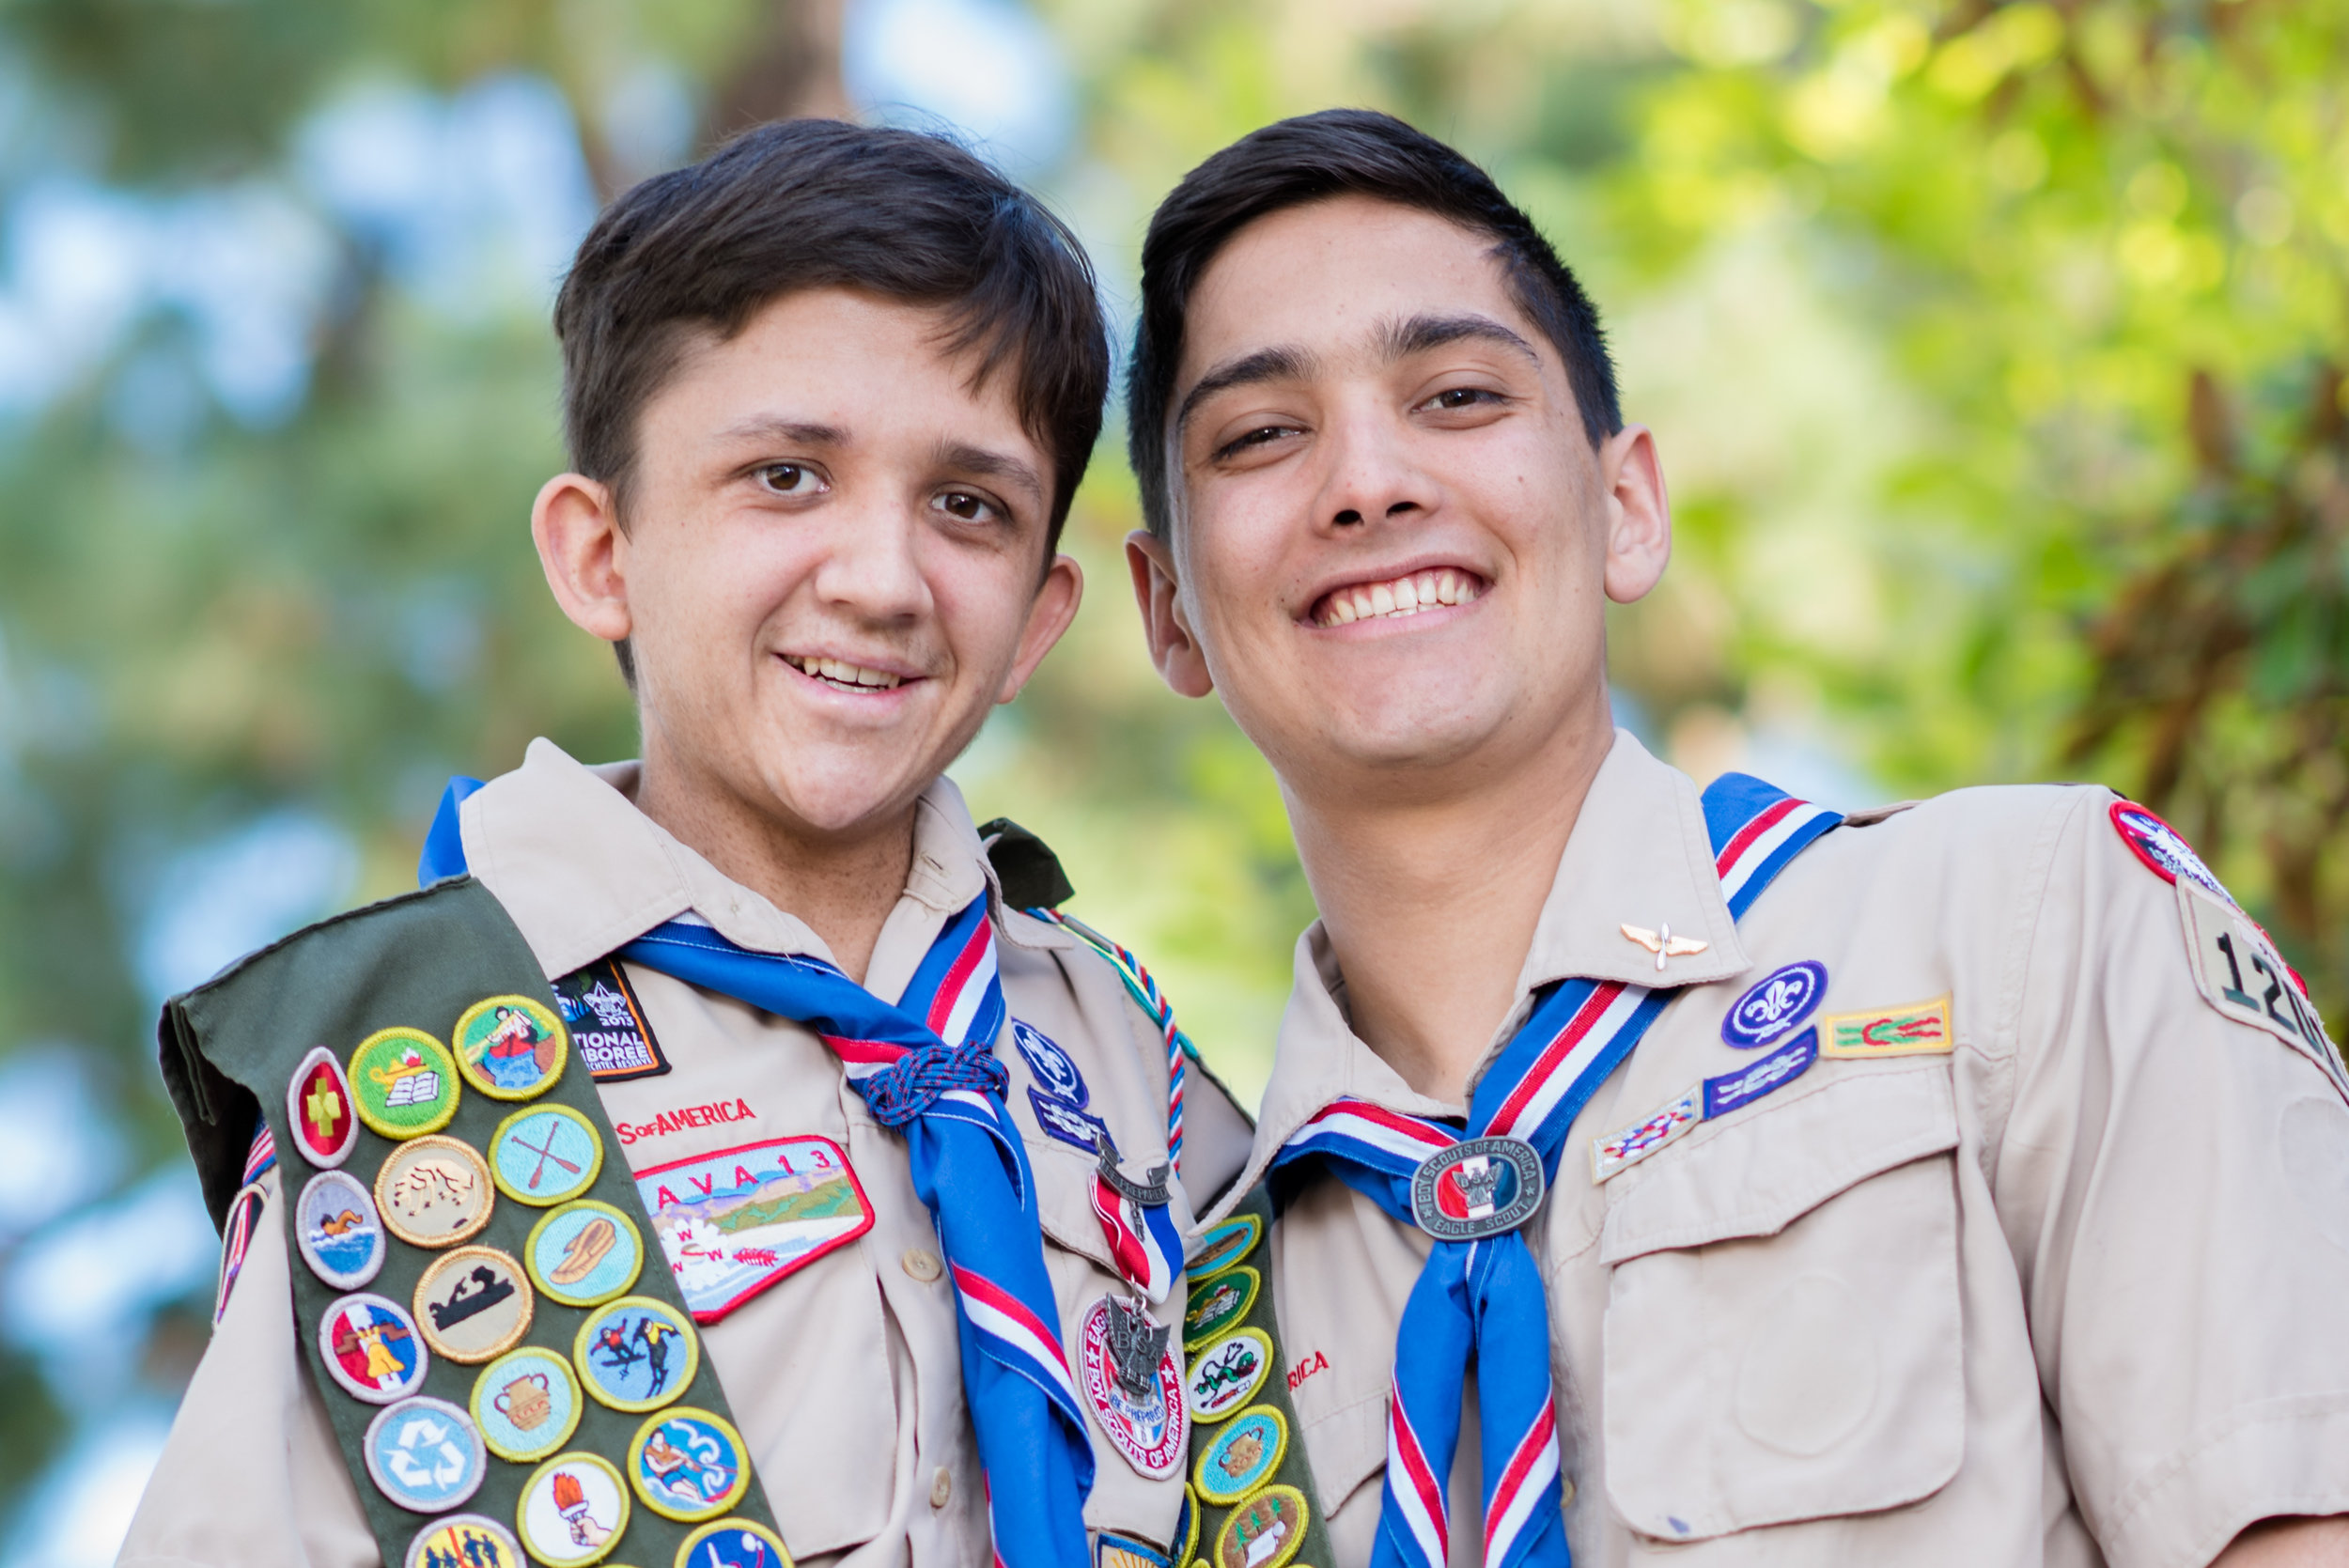 212_2016_March_19-eagle_scout_ceremony_fullerton_1-17915.jpg